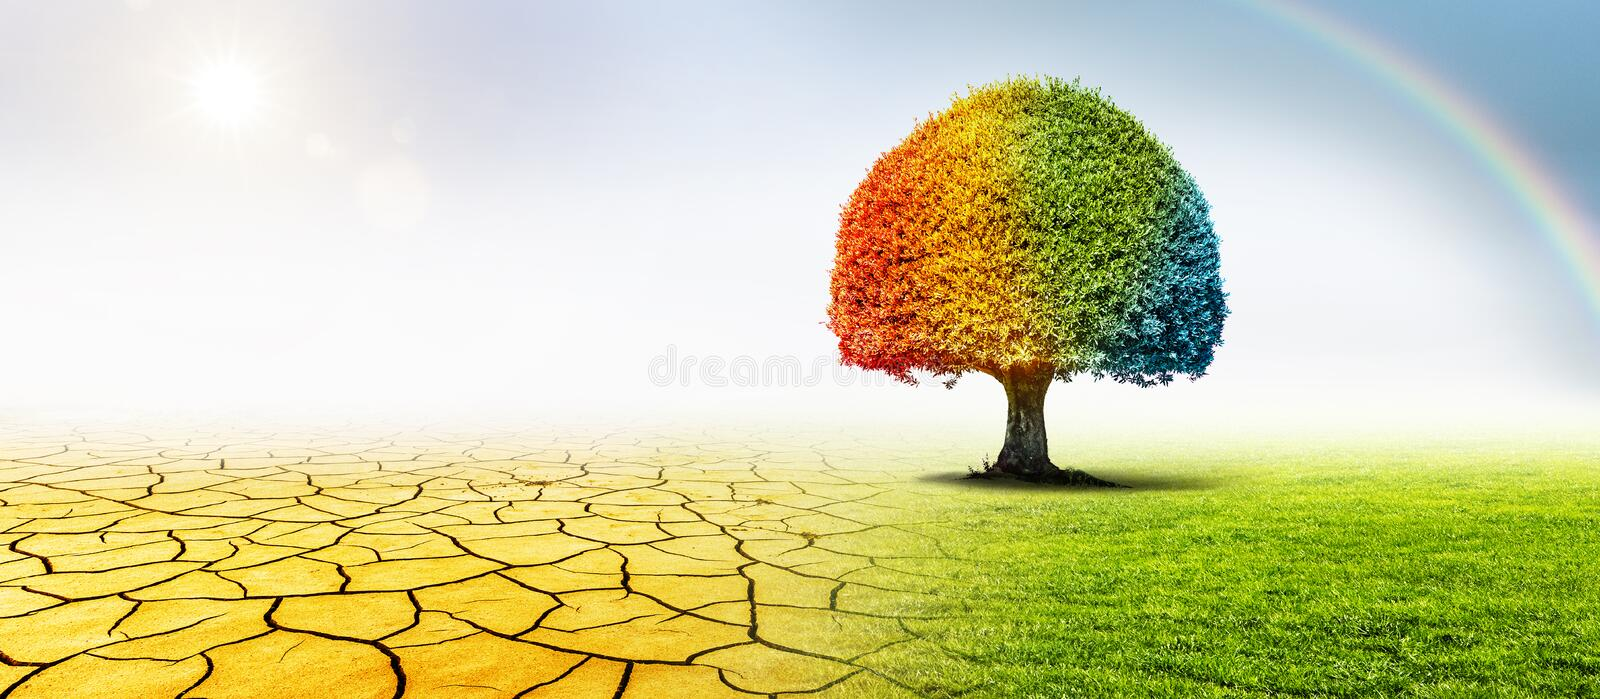 Tree in a desert and a green meadow in climate change royalty free stock photography